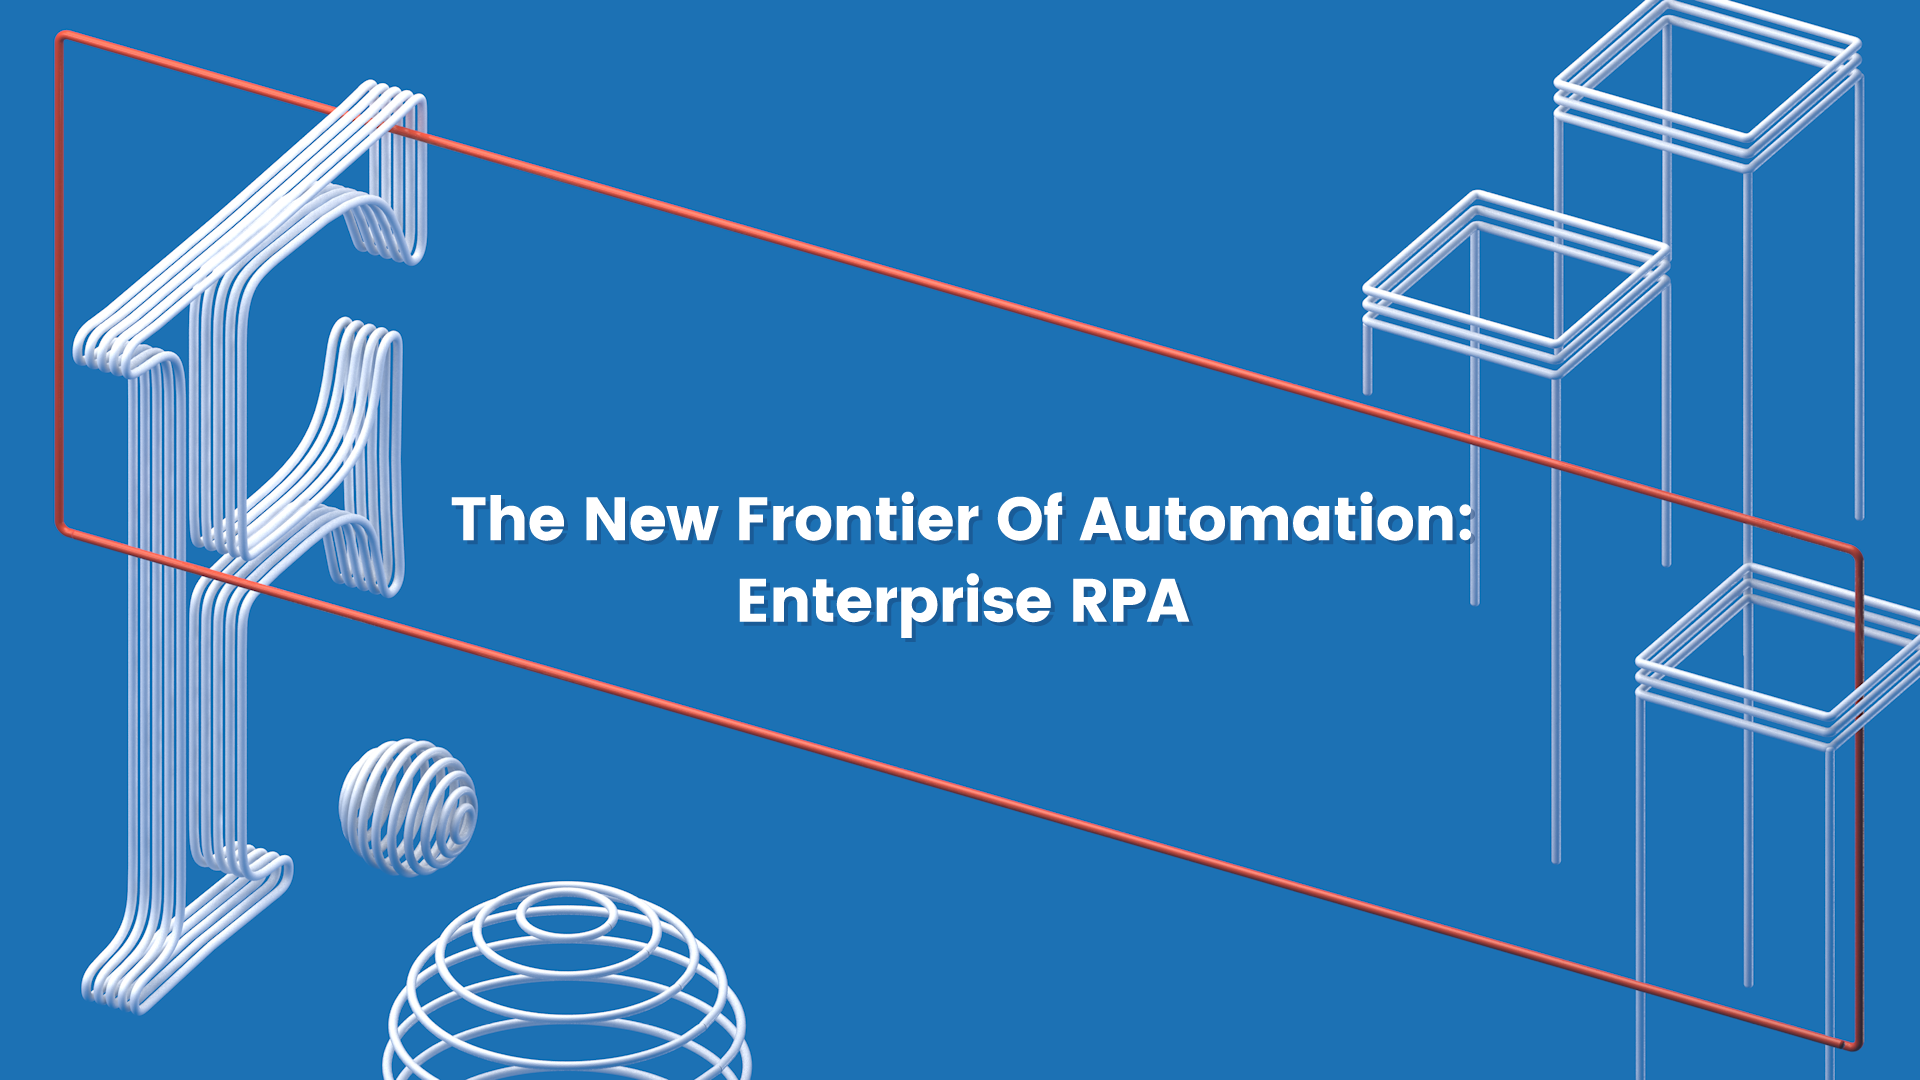 UiPath & Forrester: Enterprise RPA - The New Frontier of Automation